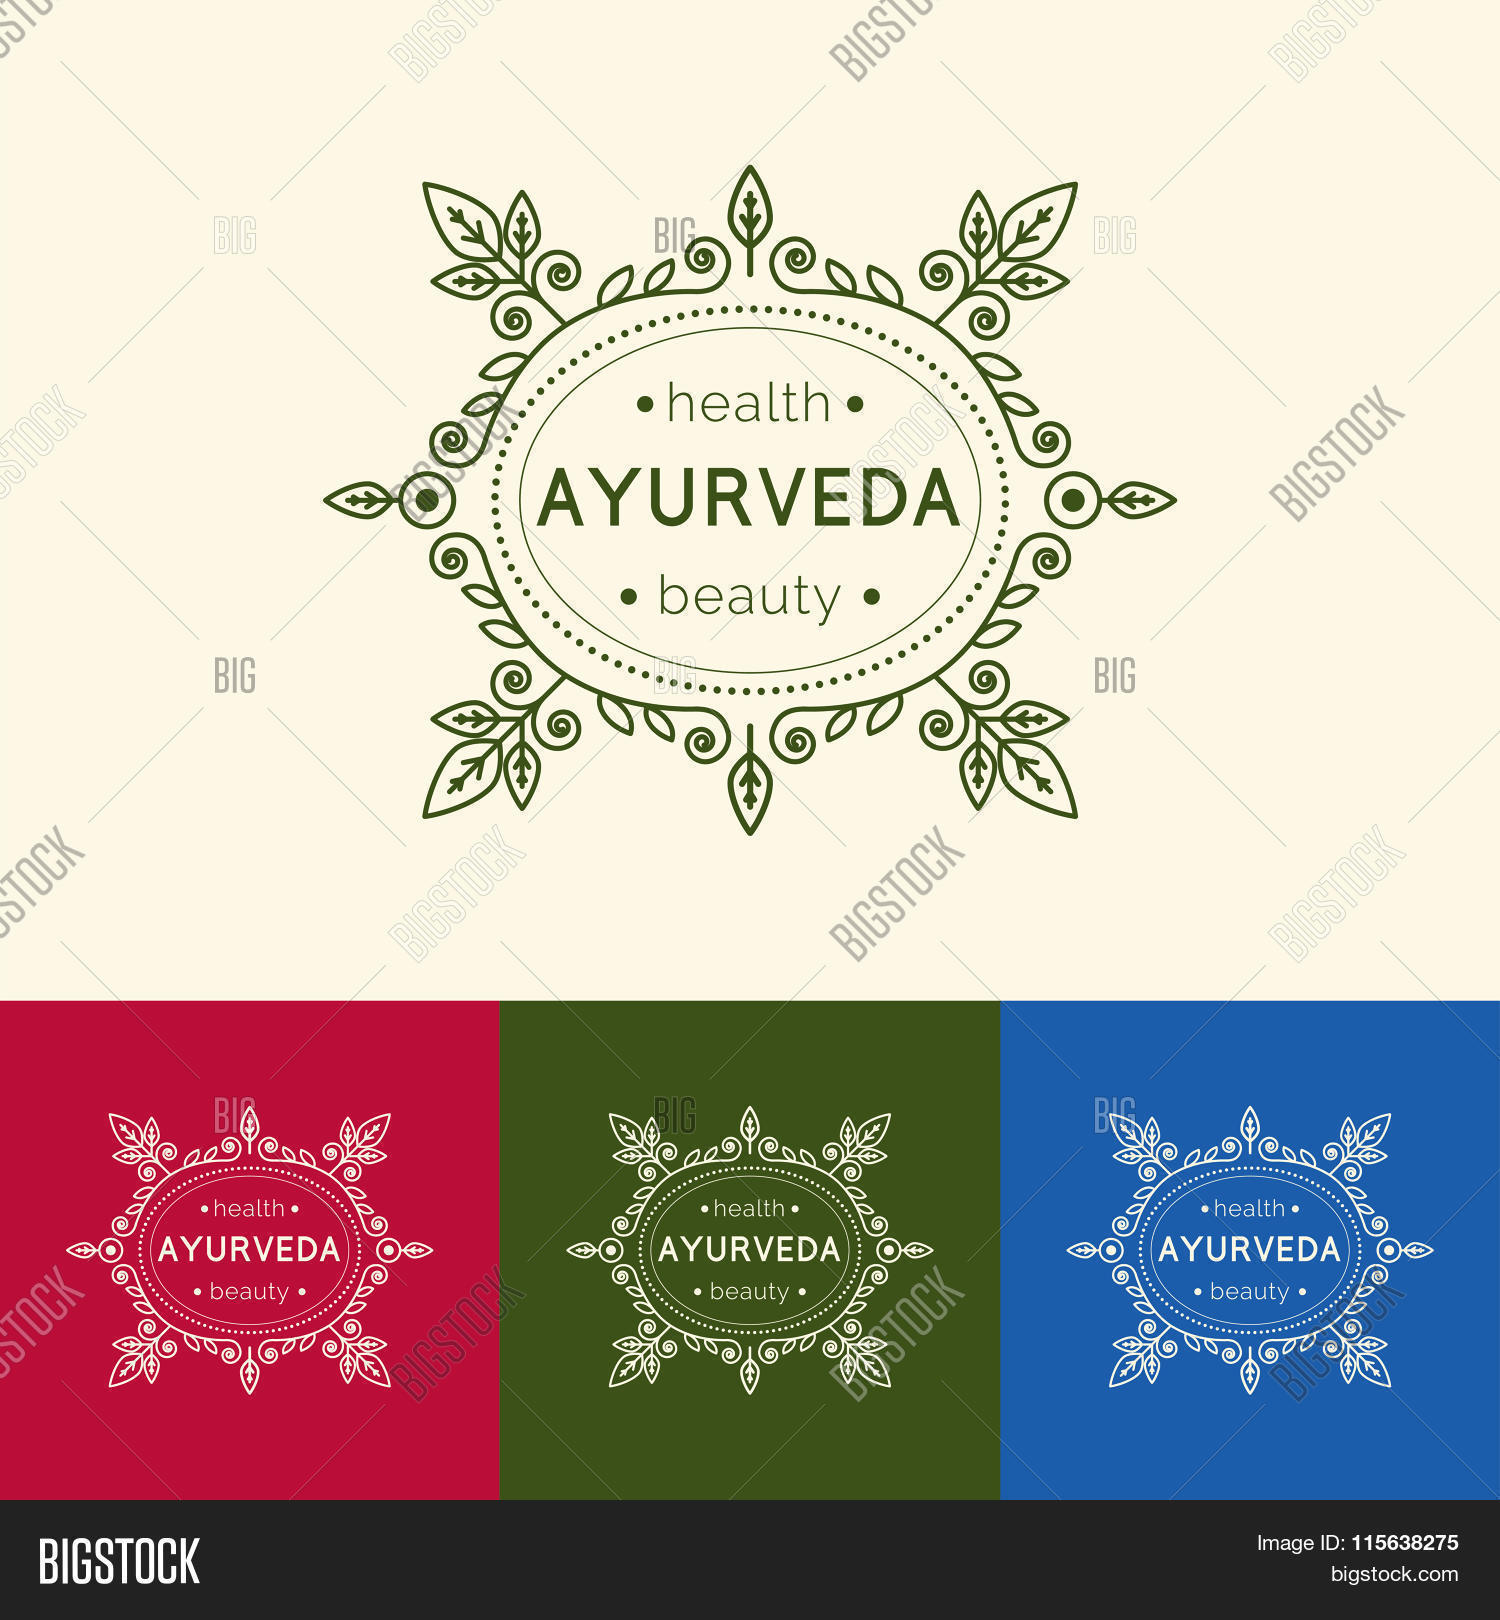 Ayurveda Vector Ilration Logo Template For Ayurvedic Clinic Or Center Monogram With Fl Ornament Spa Yoga Studio Beauty Salon